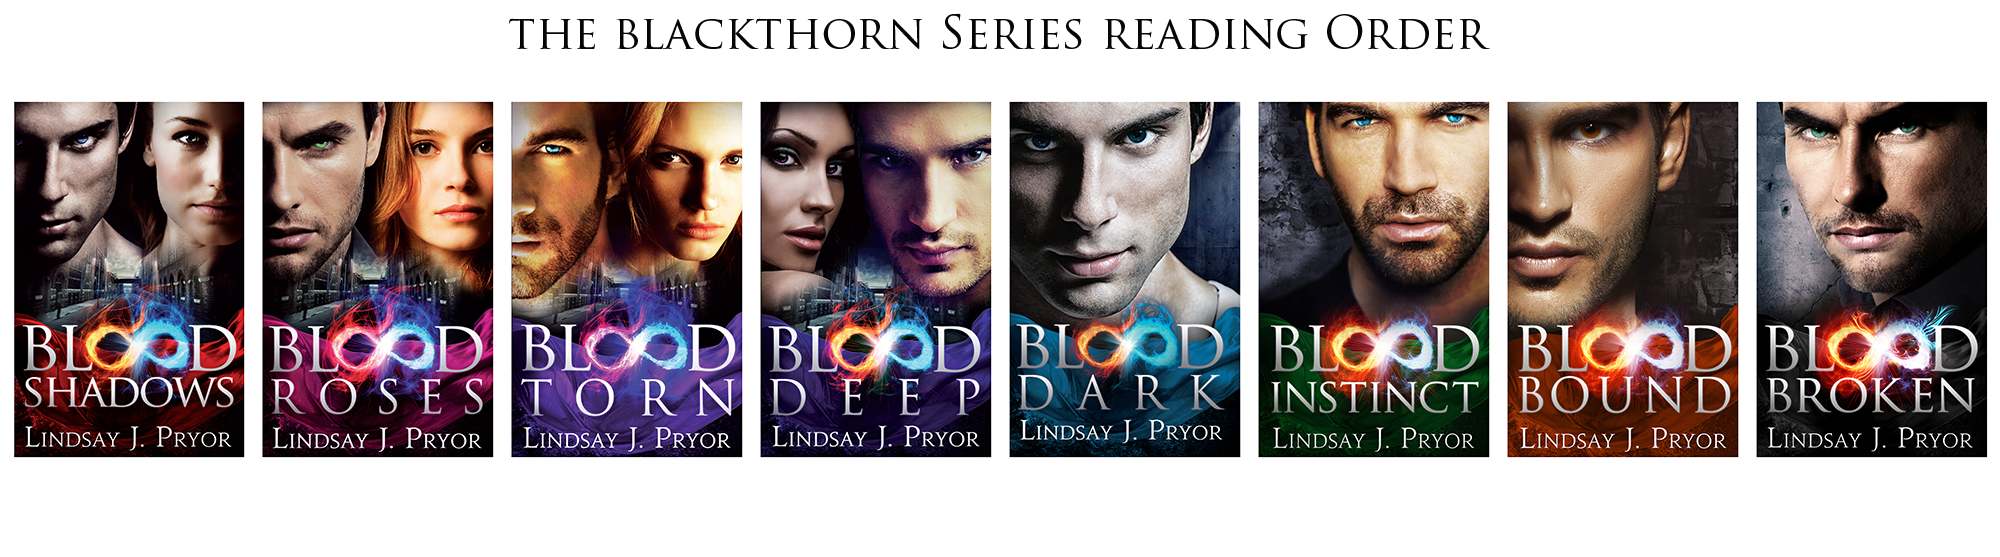 Blackthorn Books - Lindsay J  Pryor